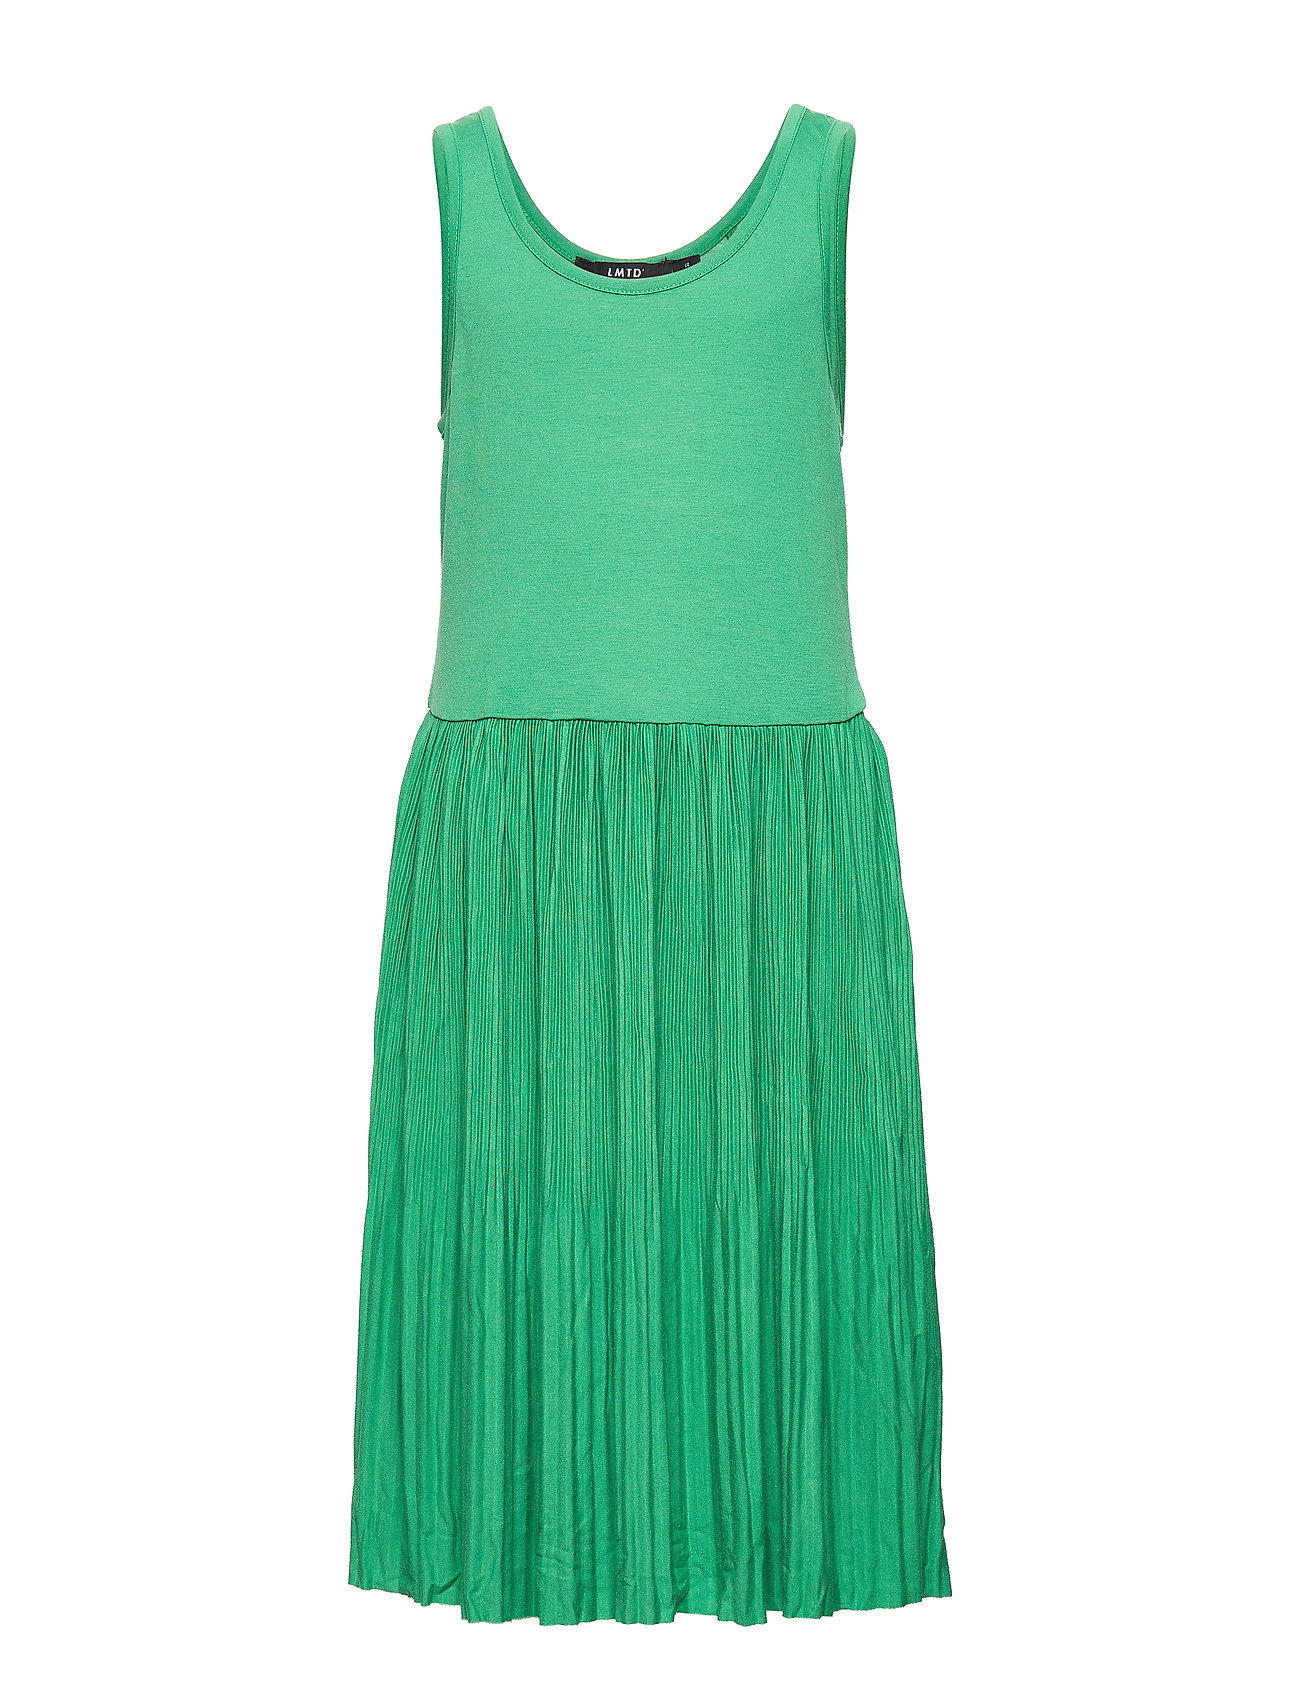 LMTD NLFFIRENZE SL PLEATED DRESS - LEPRECHAUN